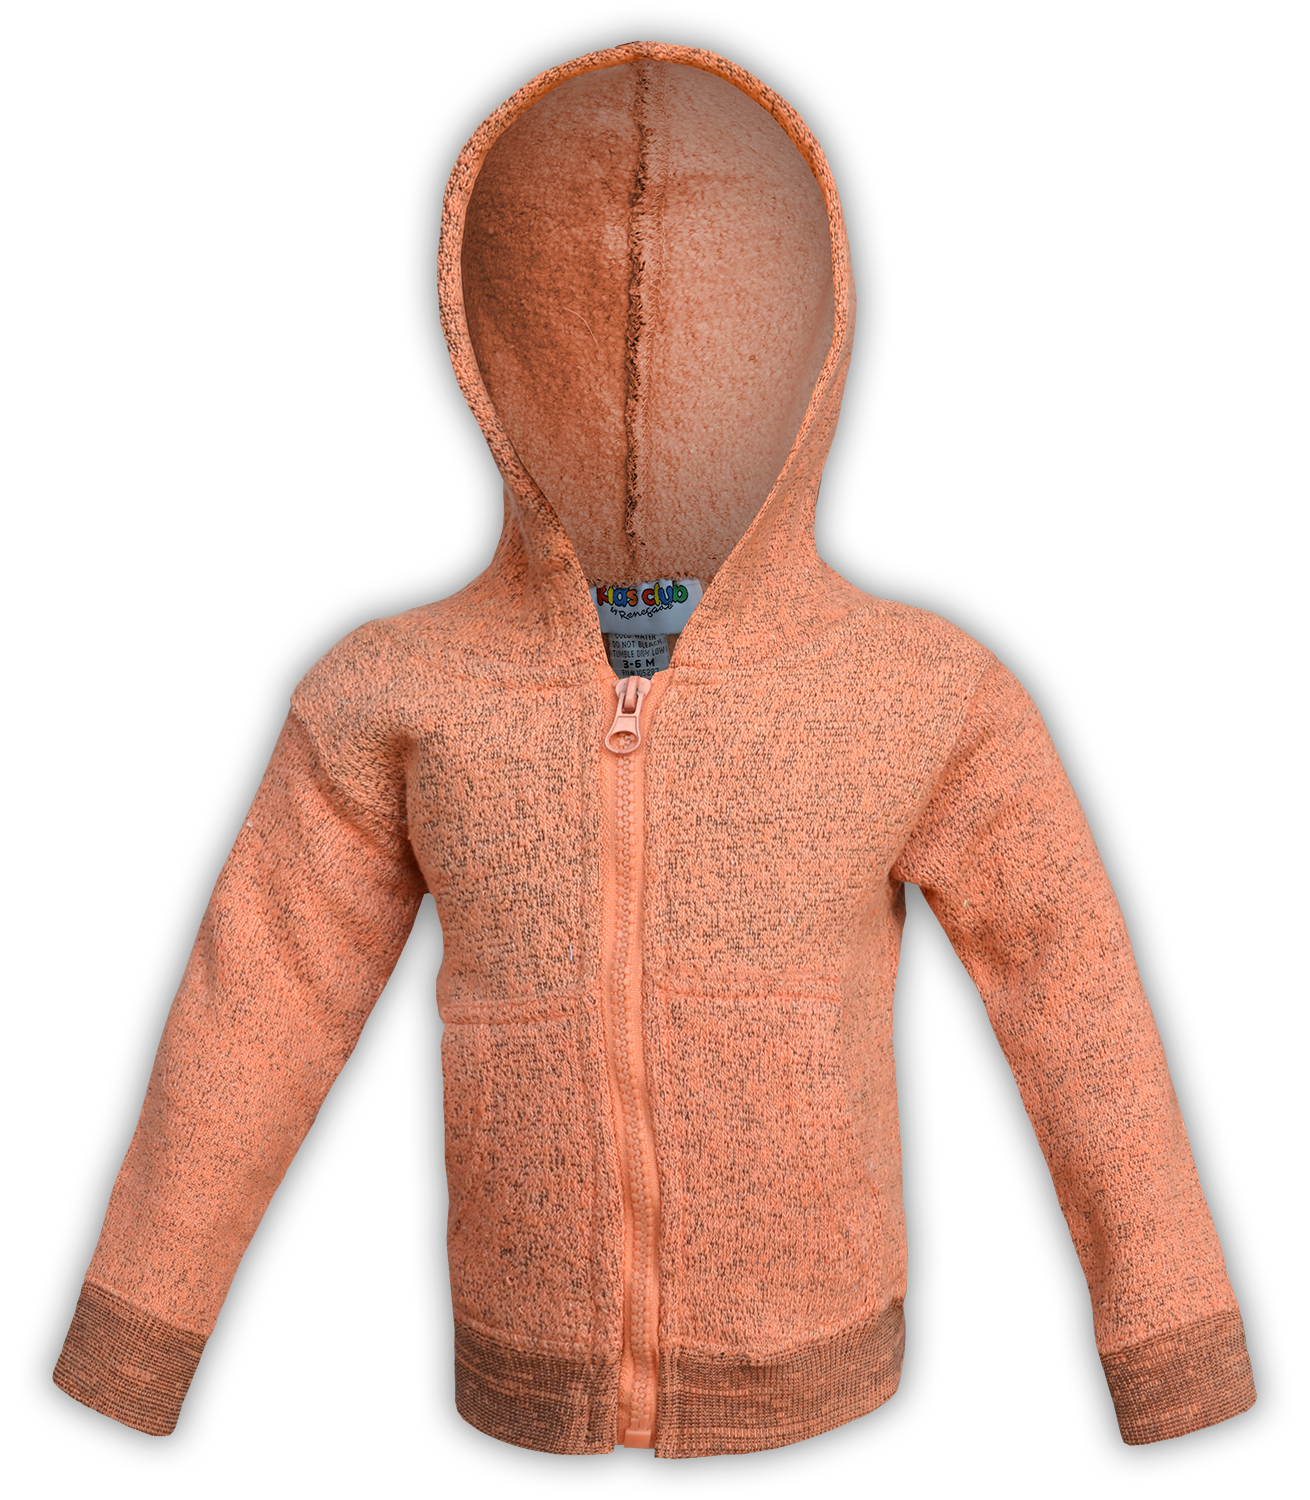 renegade-club-kids-jacket-nantucket-fleece-infant-toddler-youth-wholesale-fleece jacket, full zip, orange, pink, salmon